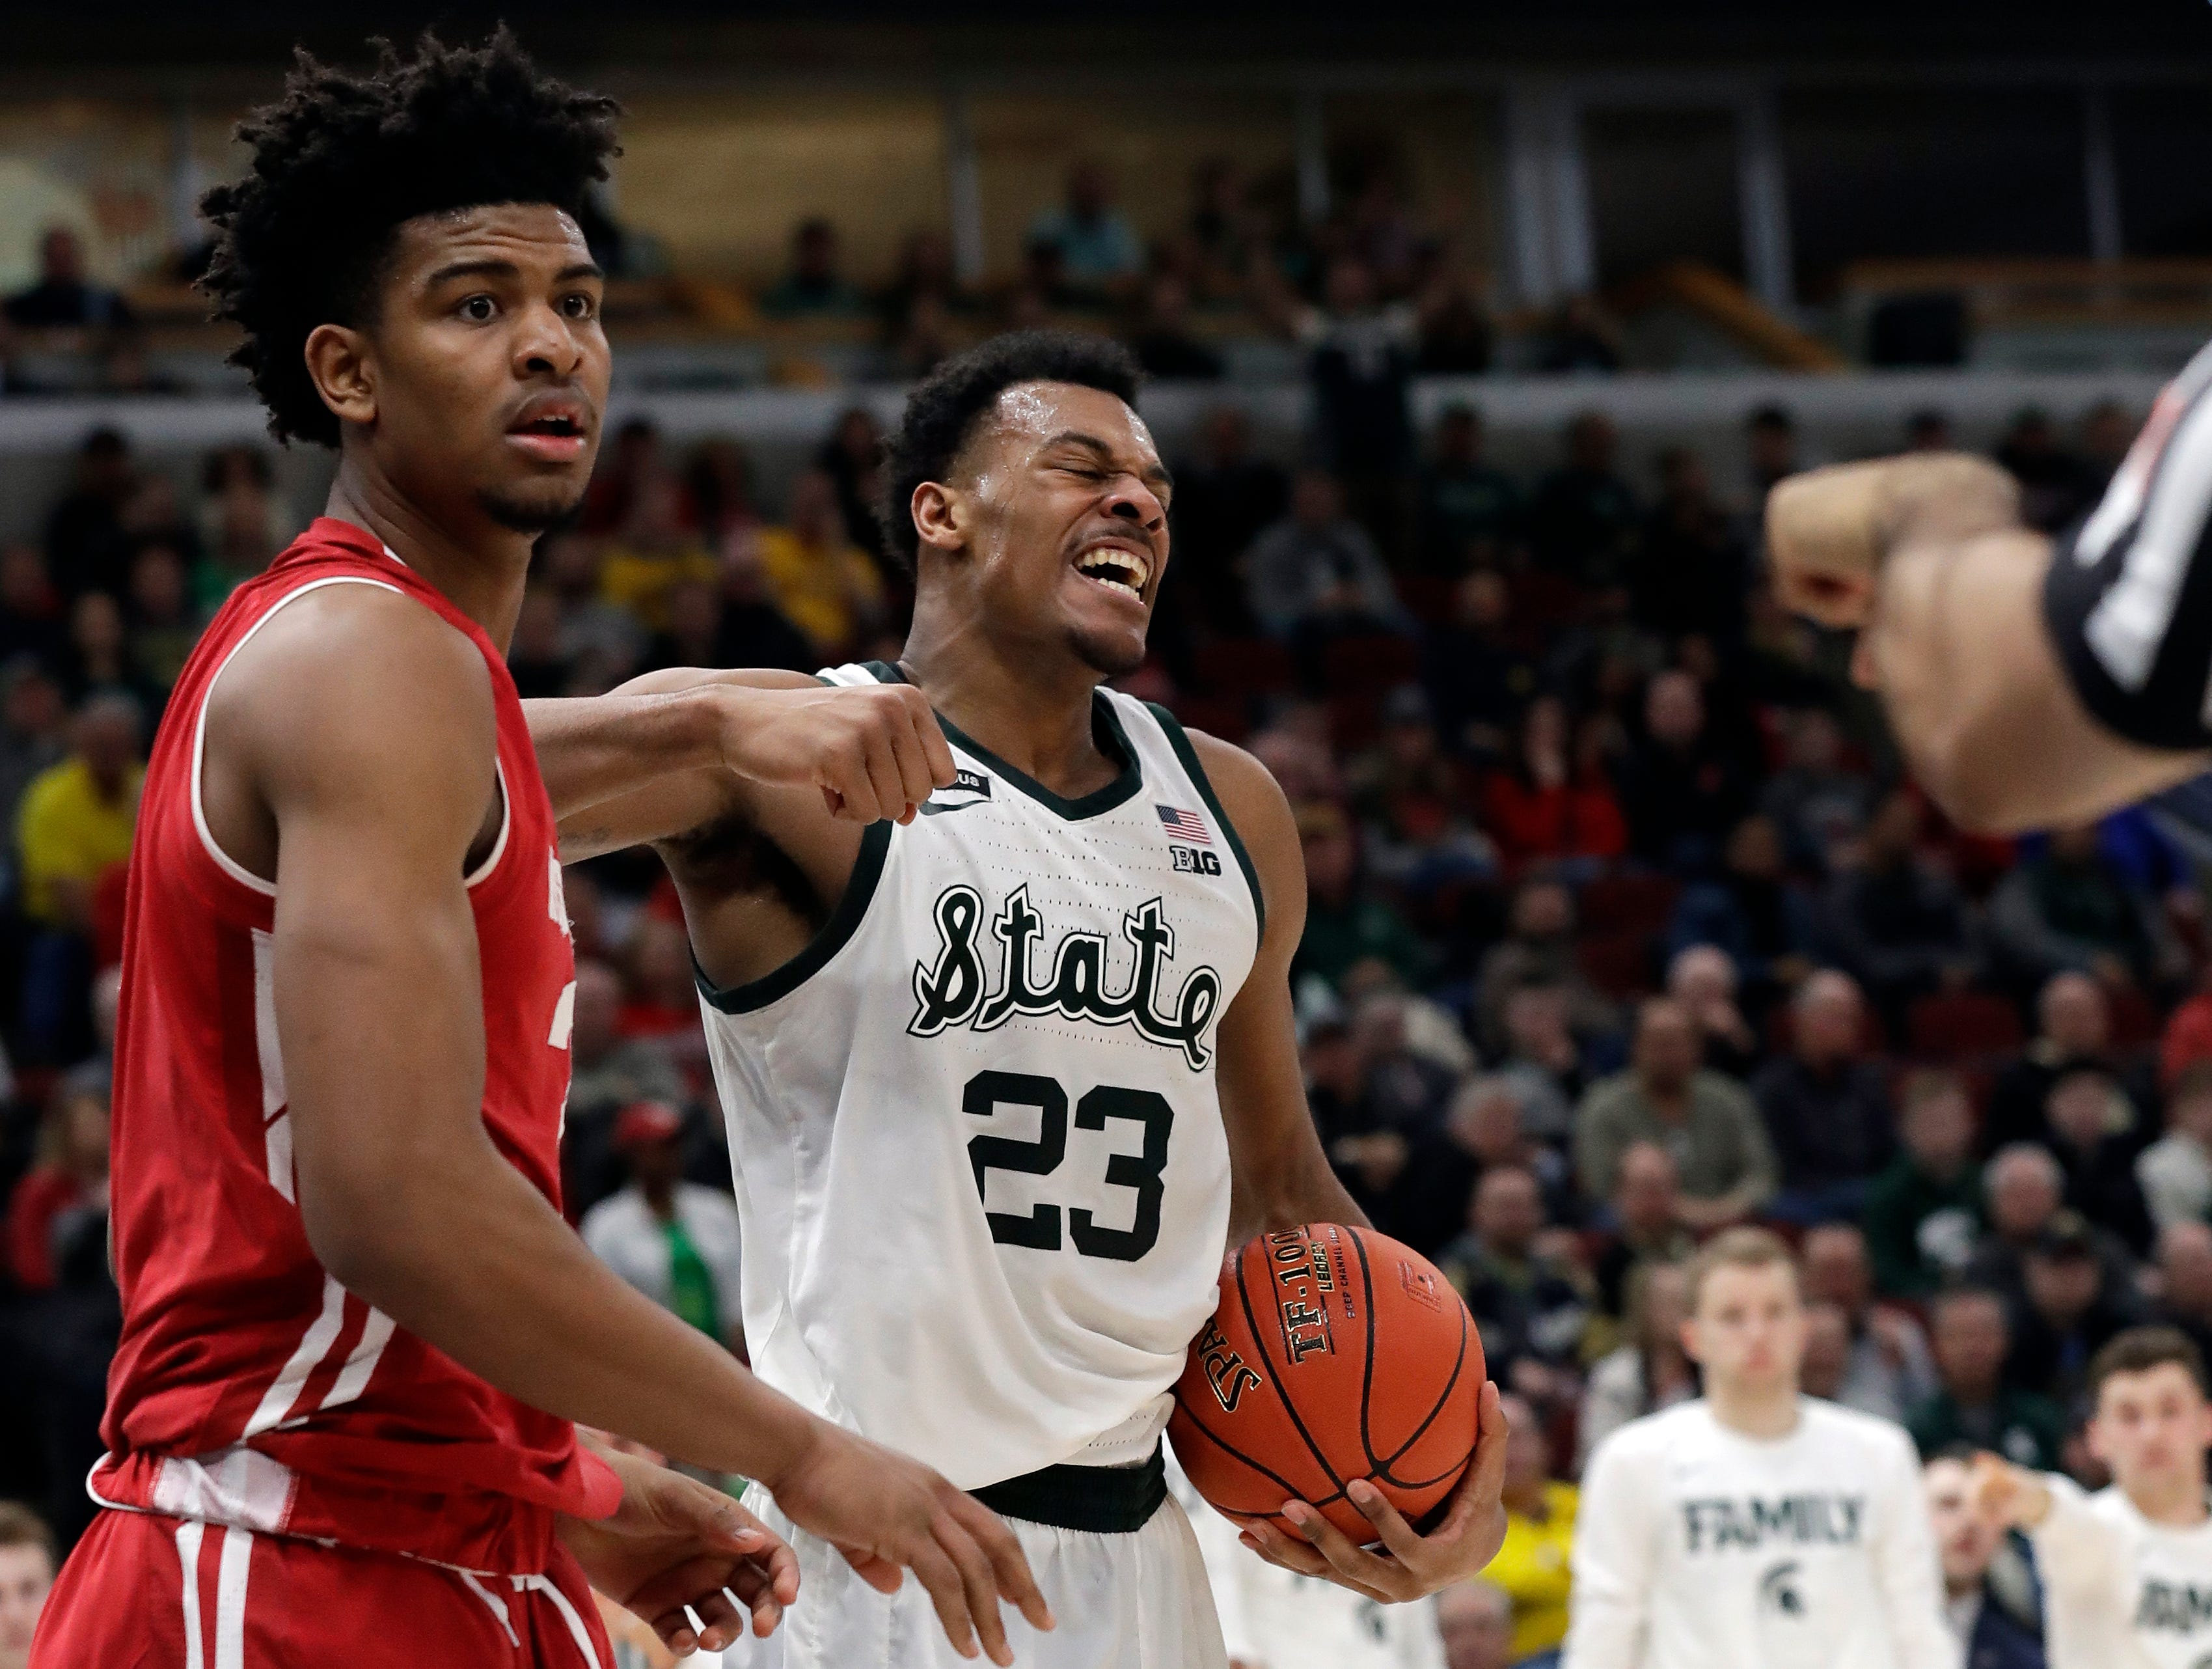 Wisconsin's Aleem Ford and Michigan State's Xavier Tillman (23) react to a call during the second half of an NCAA college basketball game in the semifinals of the Big Ten Conference tournament, Saturday, March 16, 2019, in Chicago.